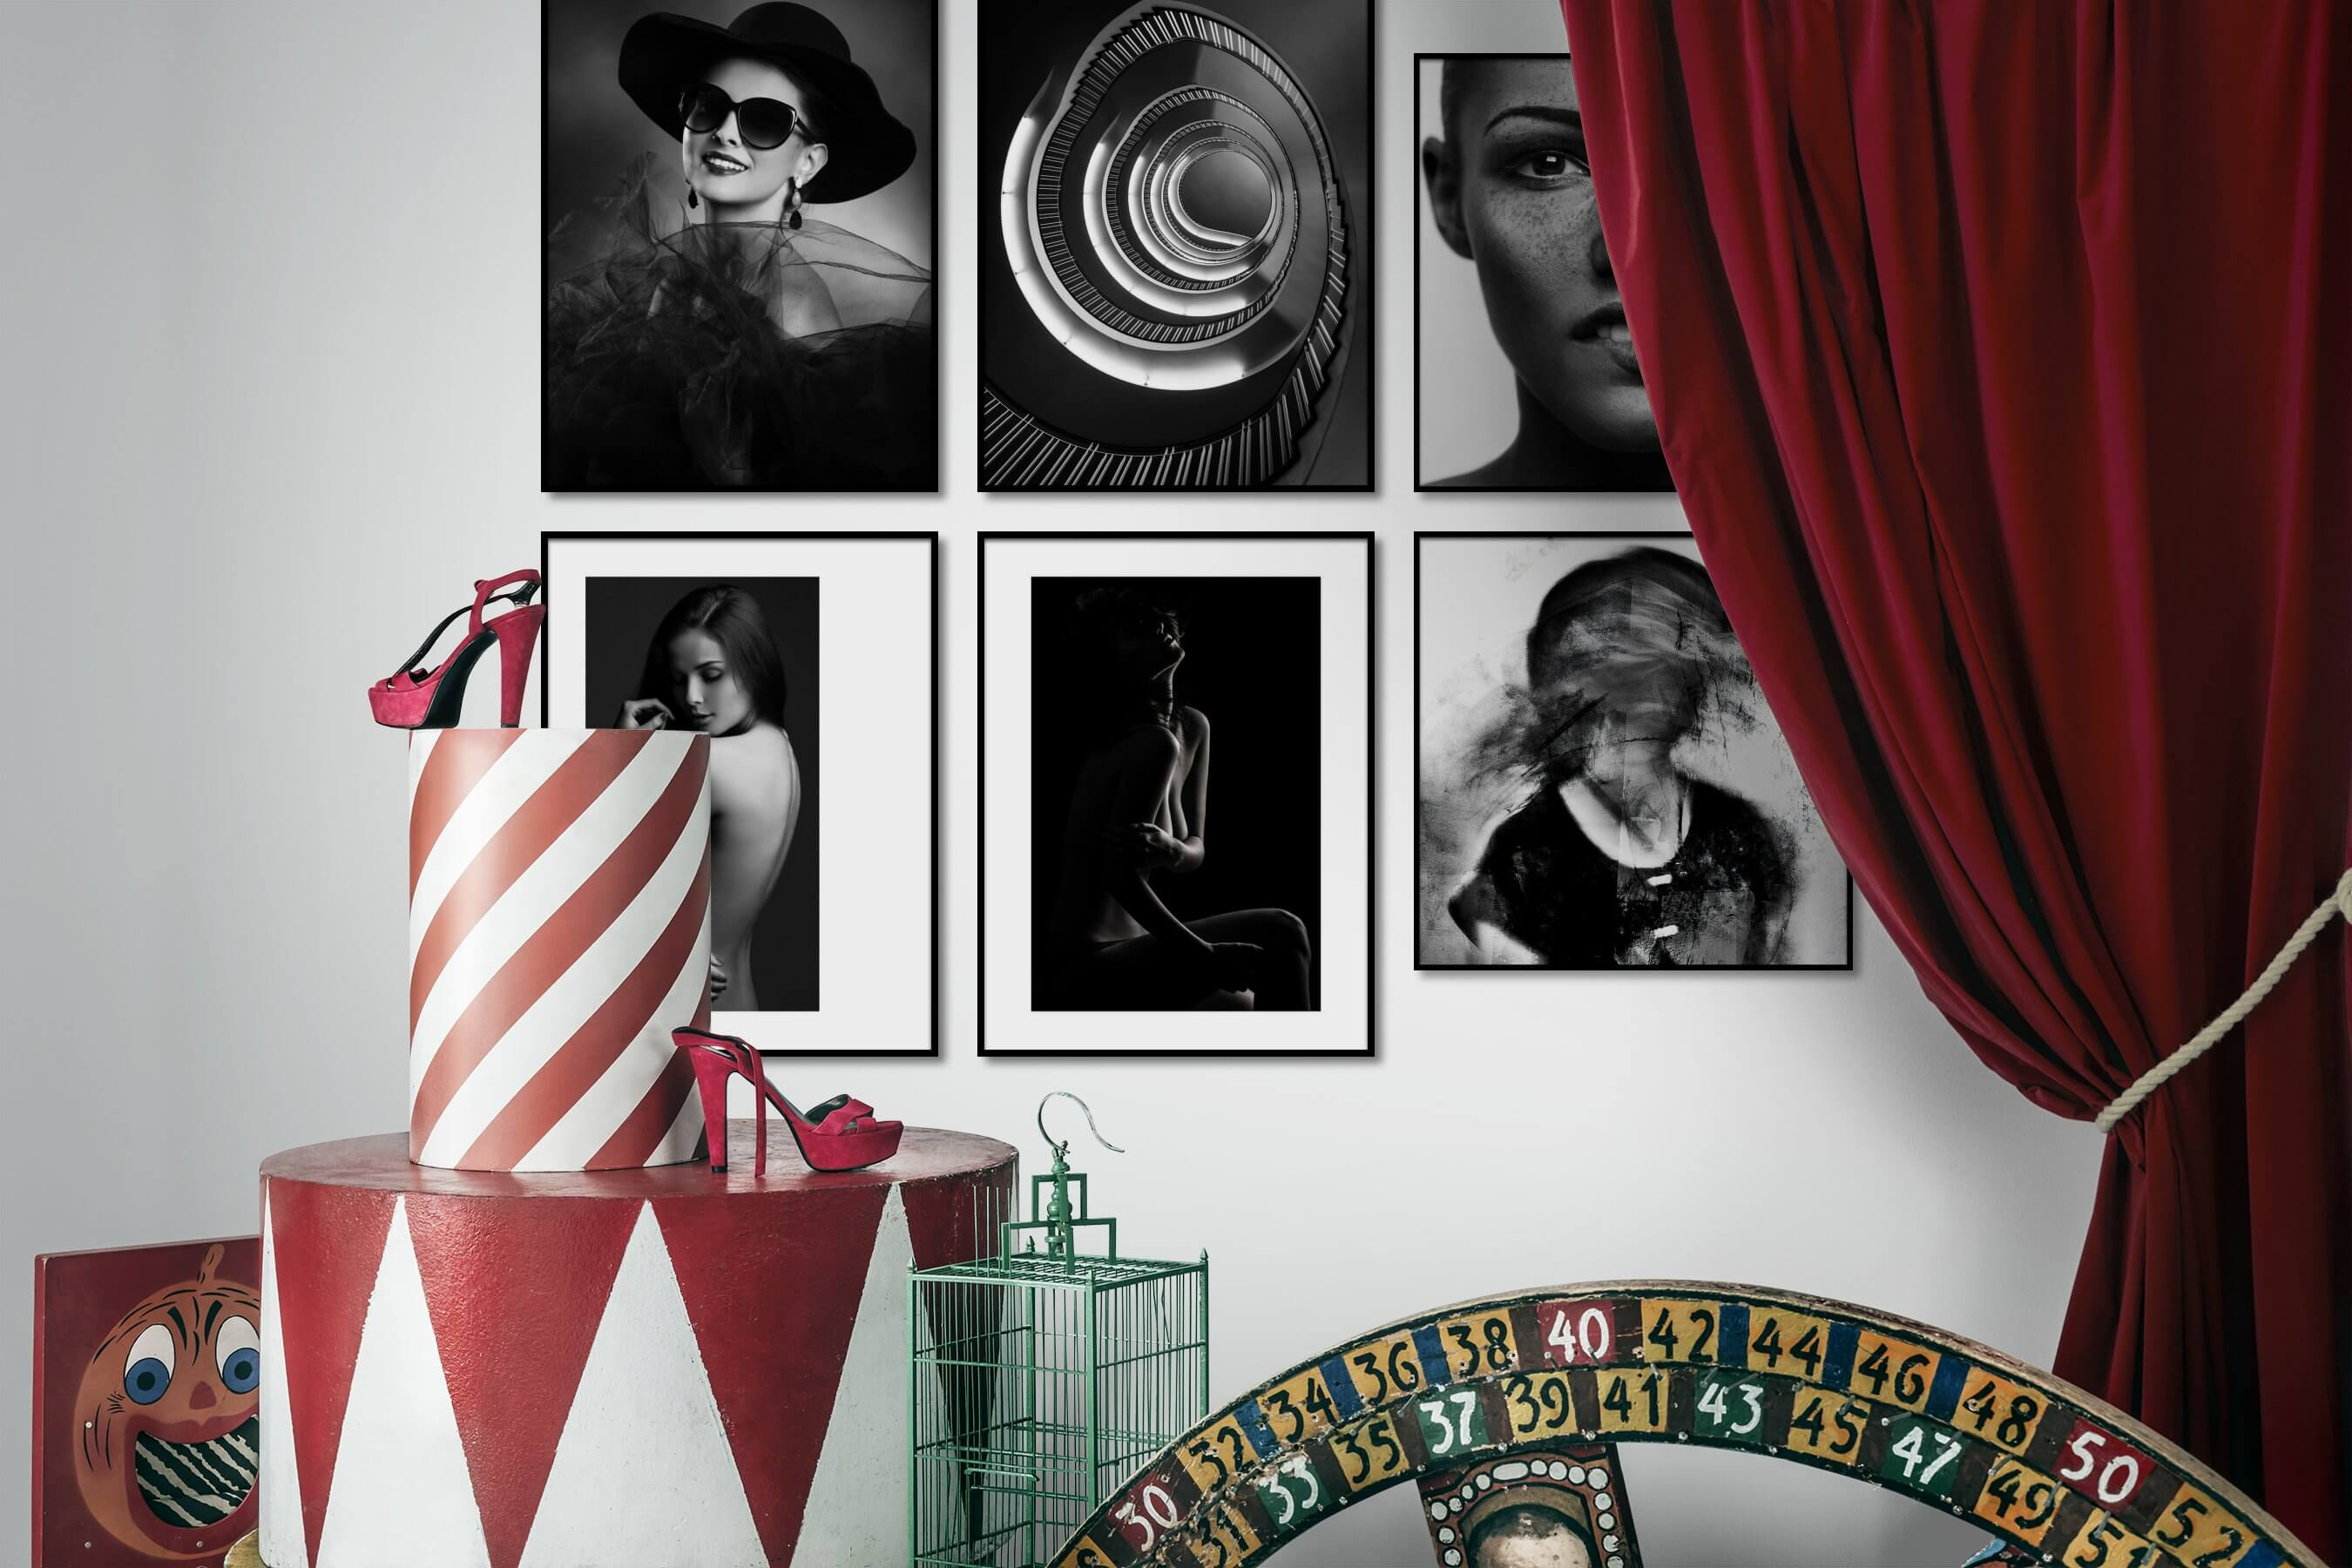 Gallery wall idea with six framed pictures arranged on a wall depicting Fashion & Beauty, Black & White, For the Moderate, For the Minimalist, and Artsy